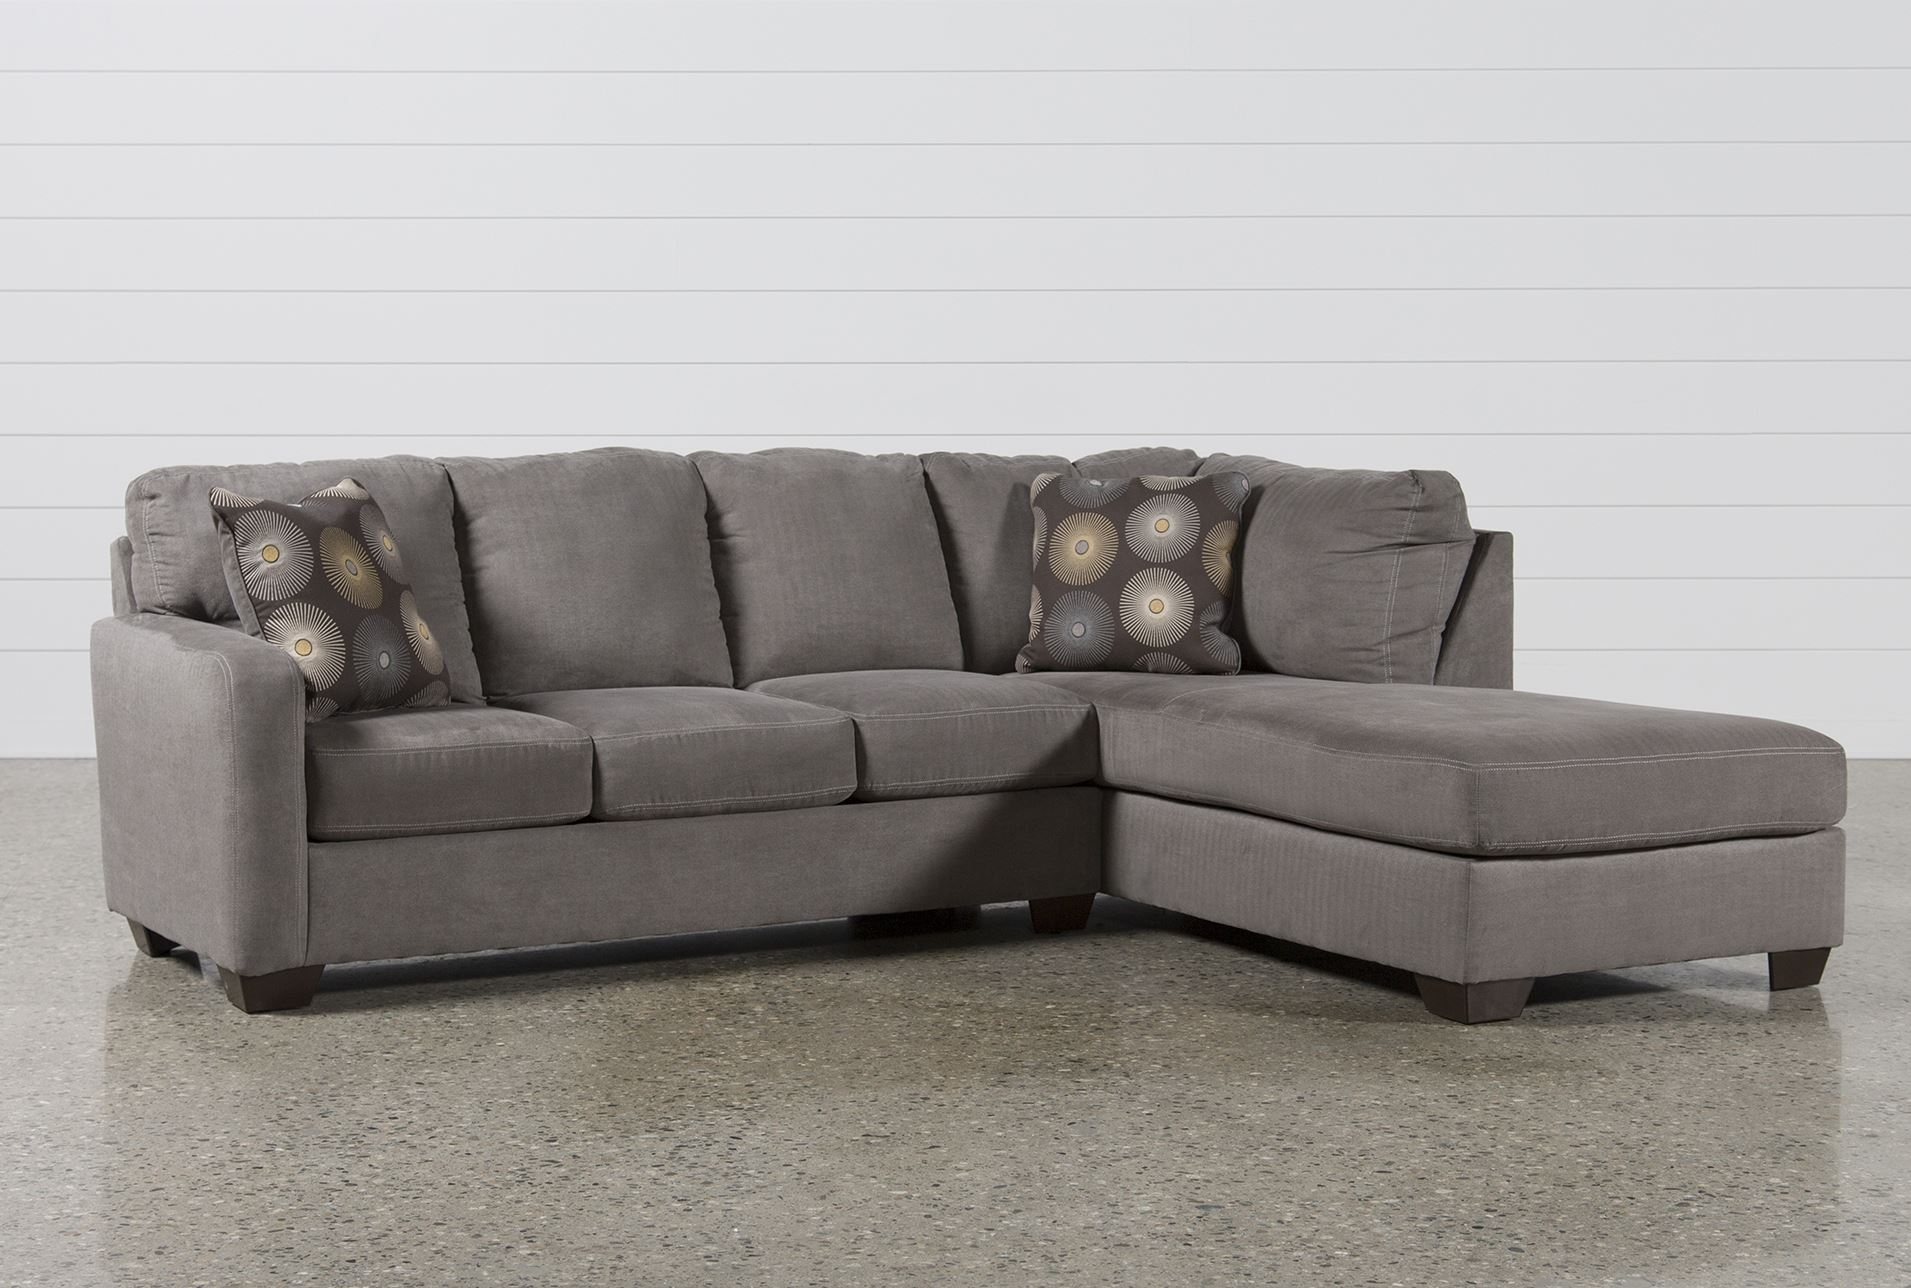 2 Piece Sectional Sofa (14 Photos) | Clubanfi In Living Spaces Sectional Sofas (Image 1 of 10)